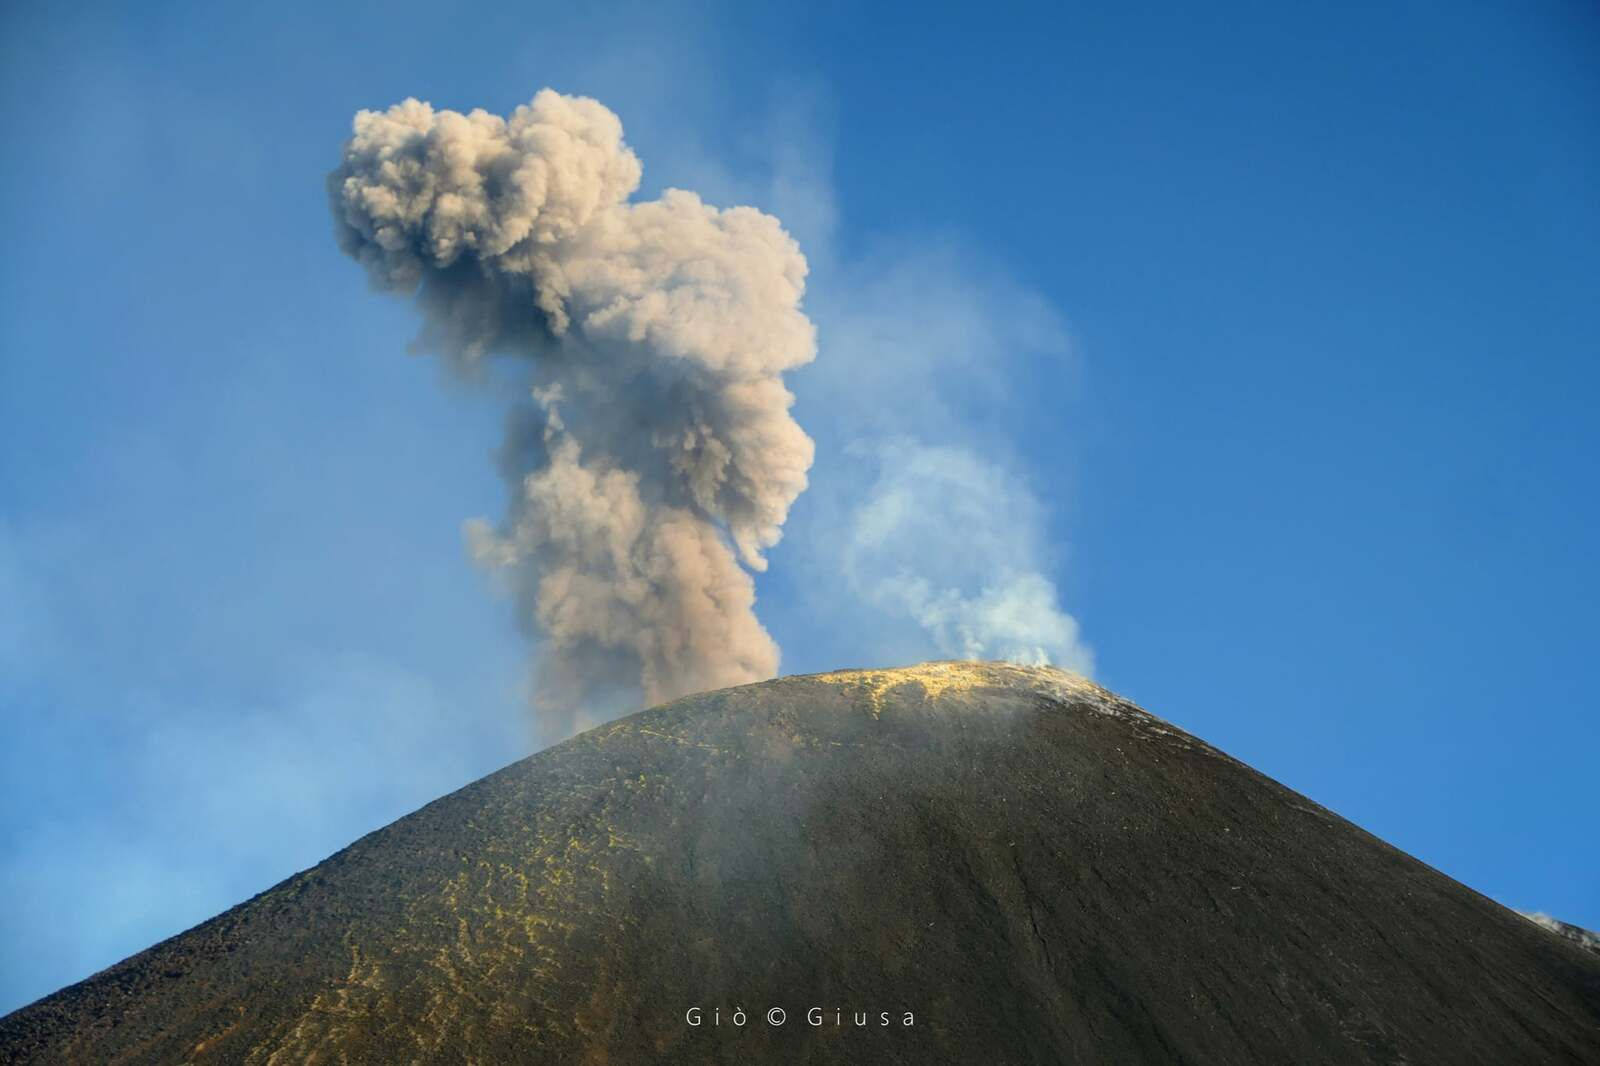 Etna SEC - explosion and puff of ash and gas on 20.10.2021 - photo Gio Giusa